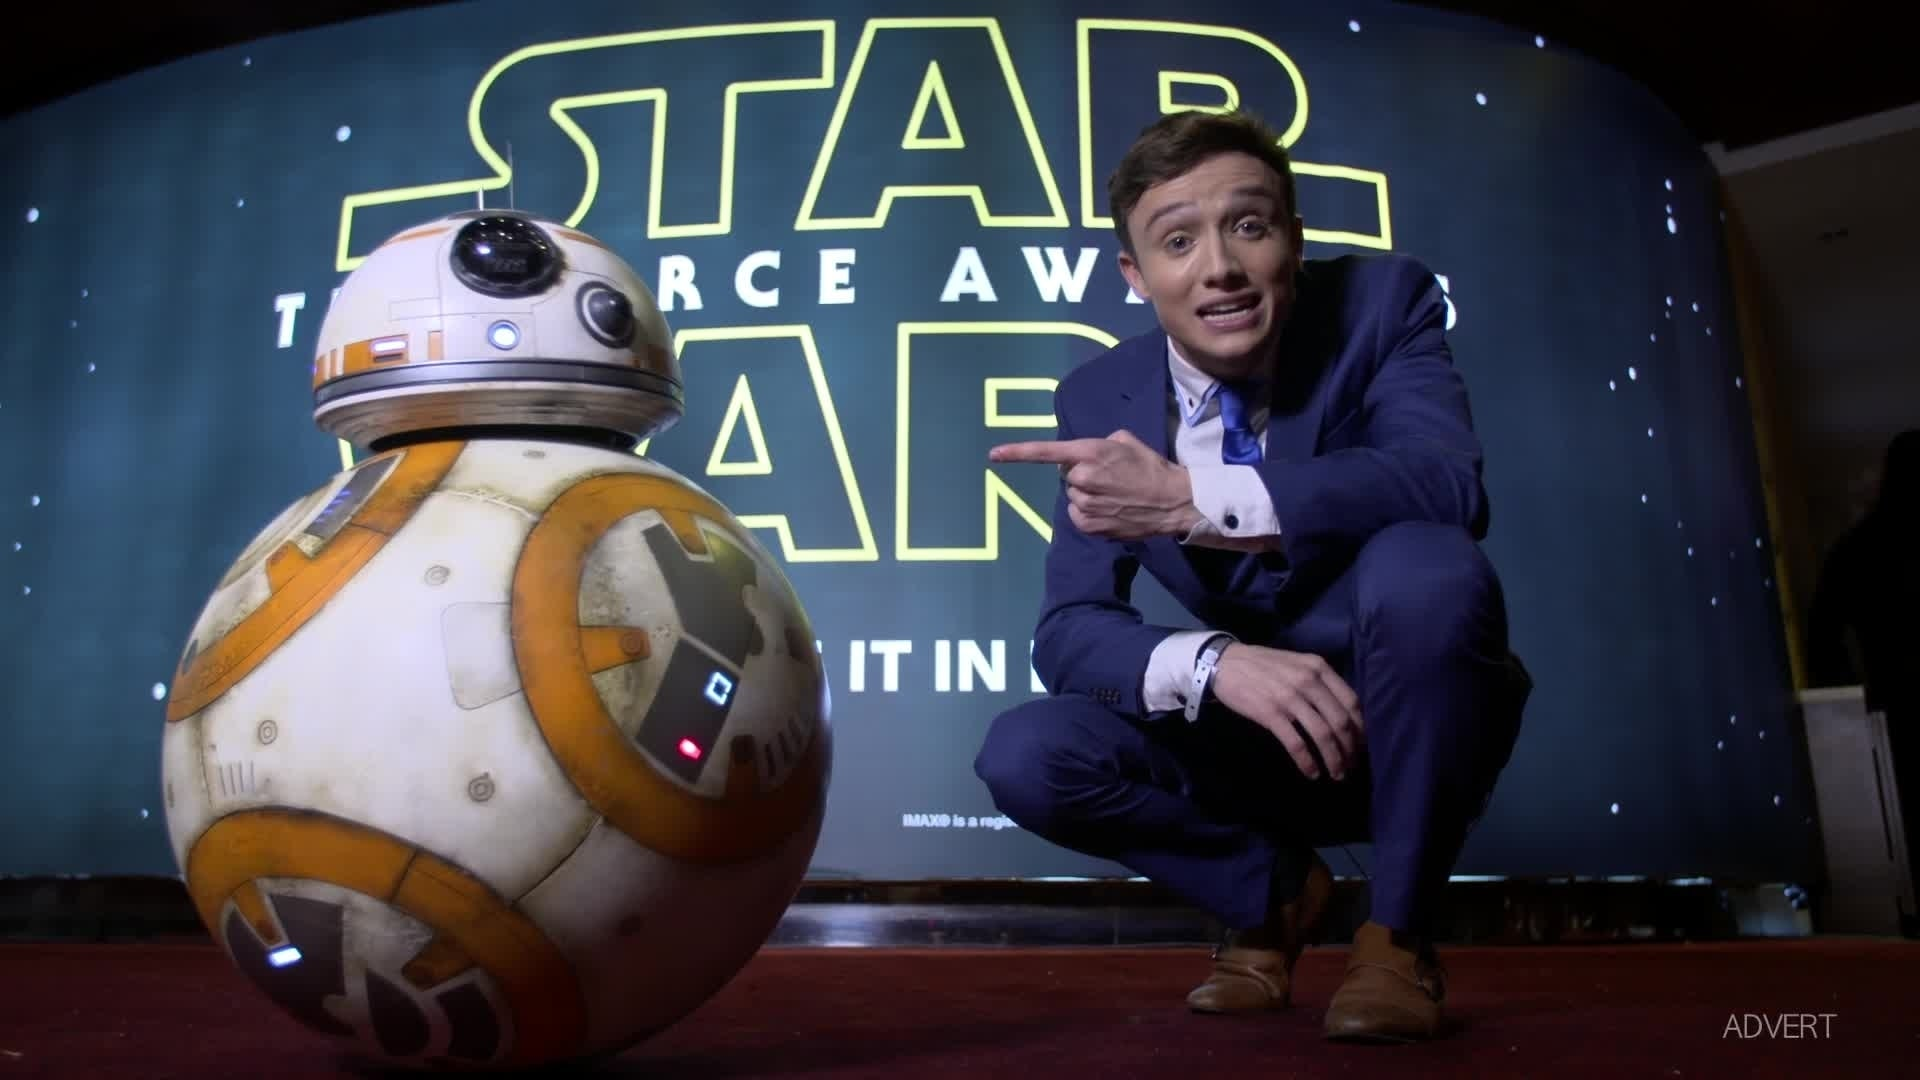 Star Wars: The Force Awakens - Red Carpet